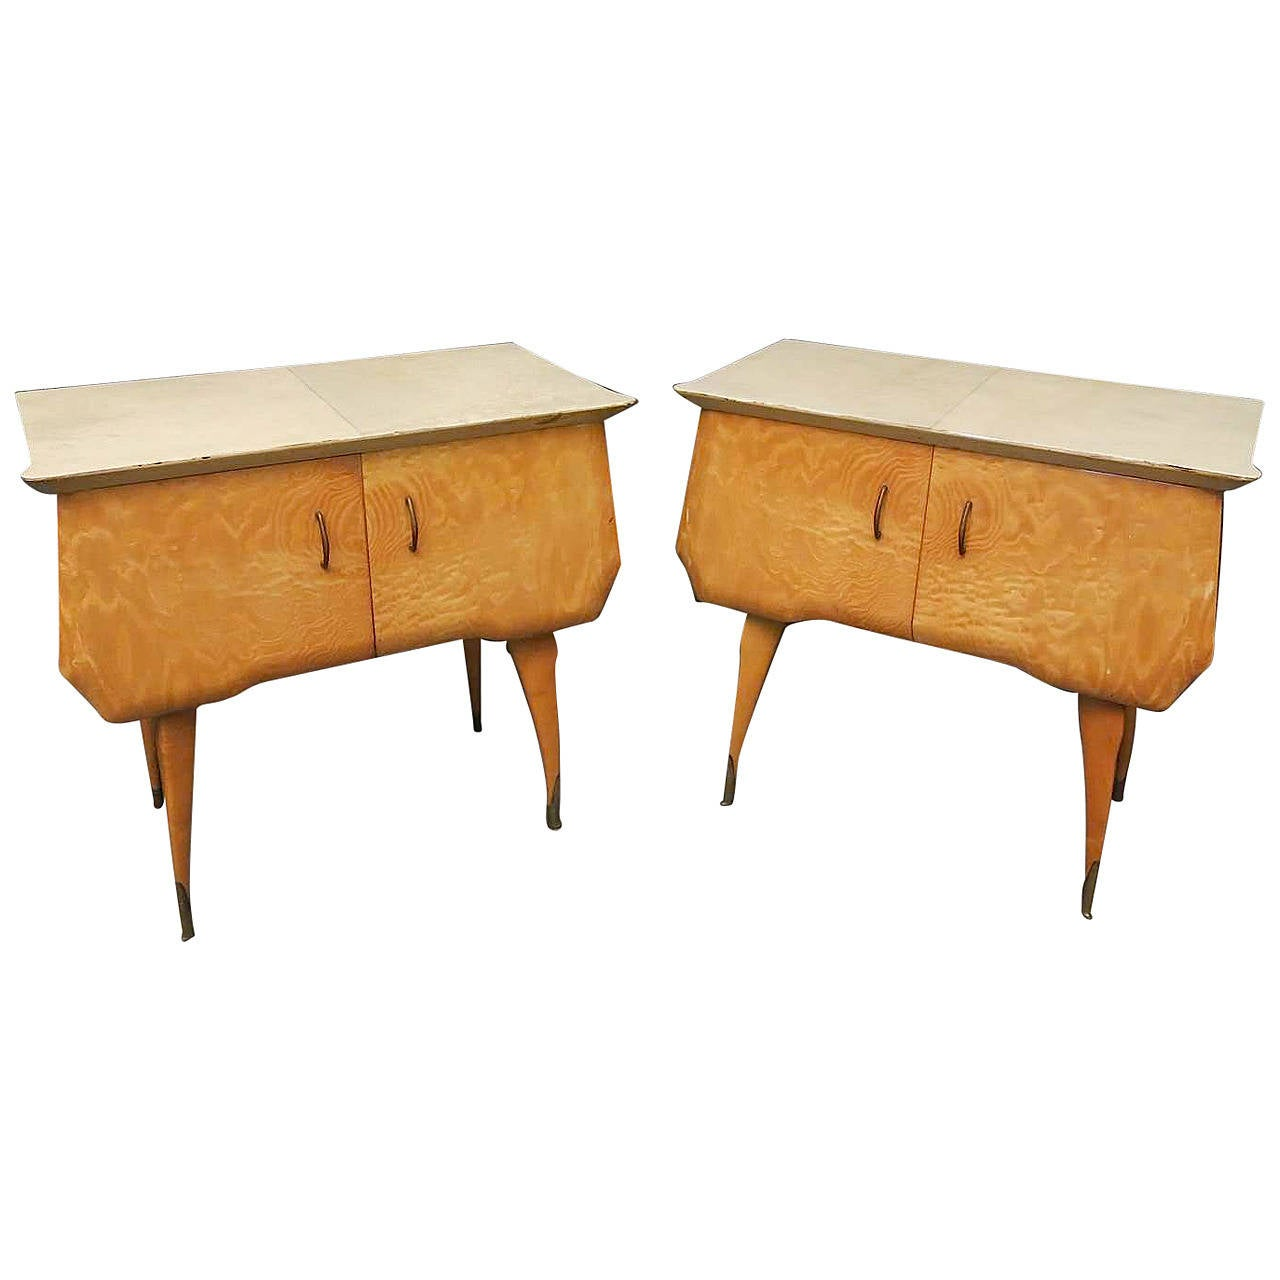 Pair Of 1950s Maple And Parchment Midcentury Bedside Tables For Sale